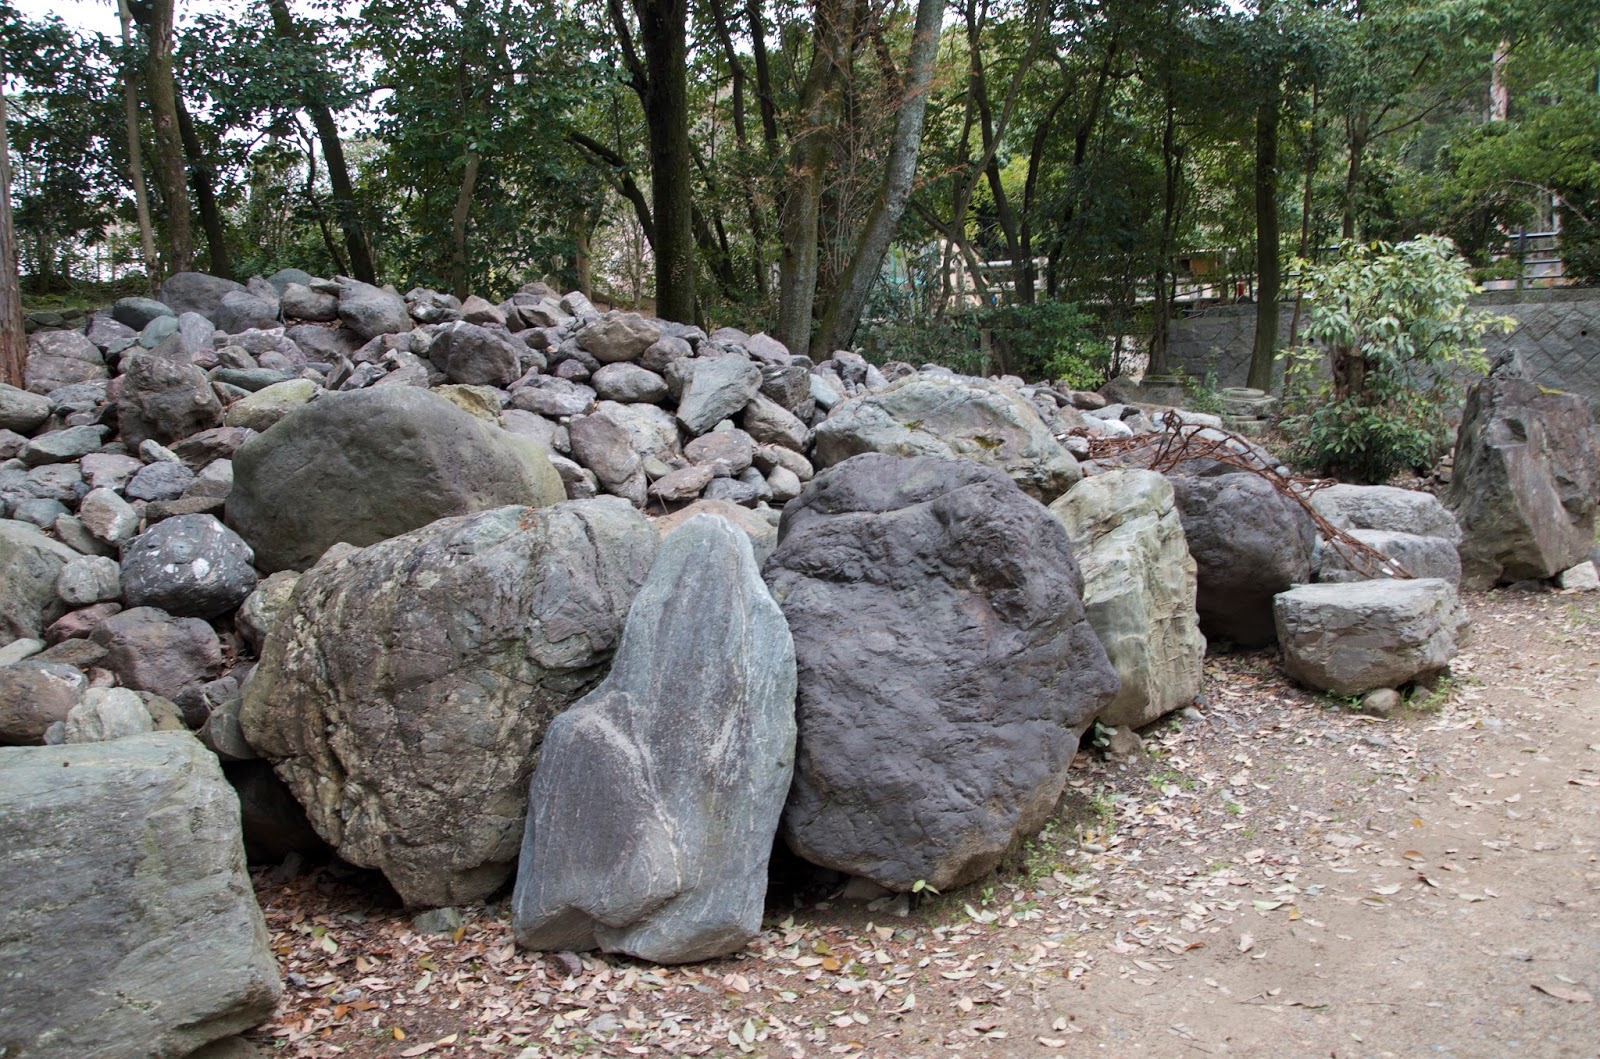 Robert ketchell 39 s blog stone setting in the japanese garden for Japanese stone garden